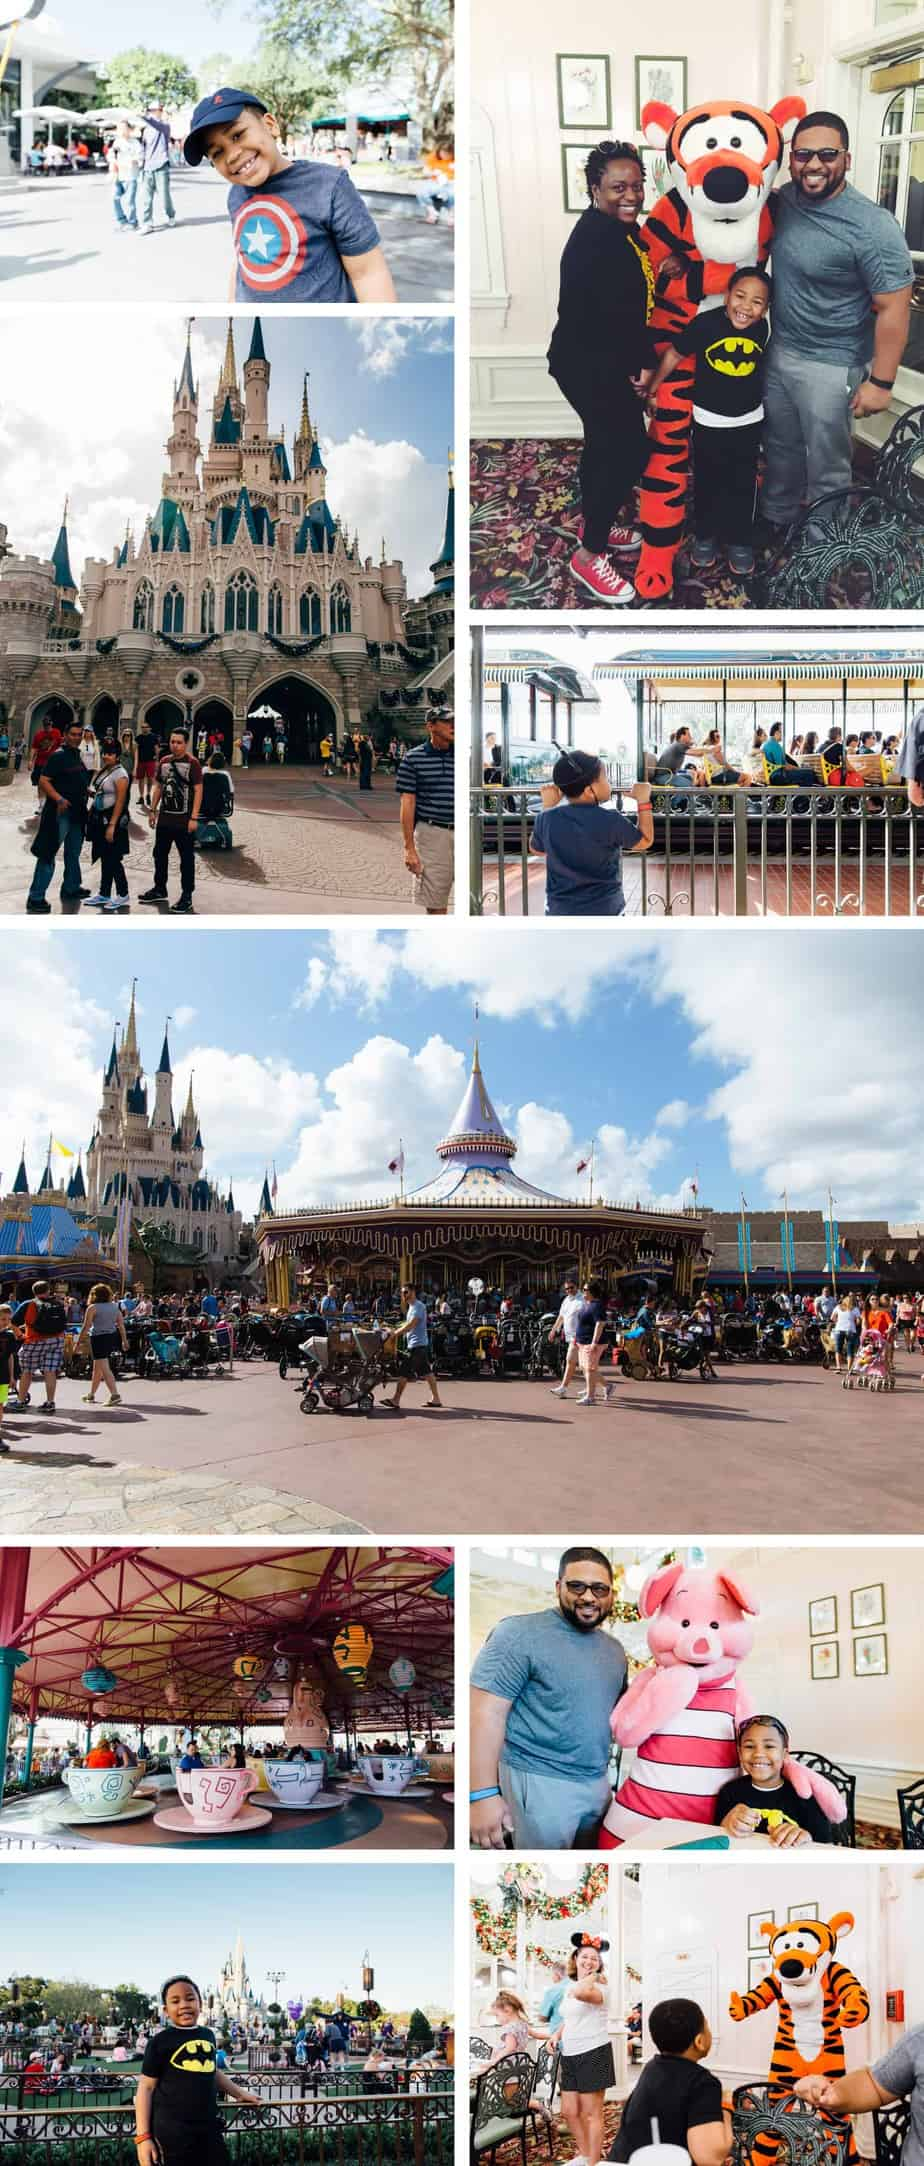 Day 2 of our trip to Disney! We spent our 2nd day at Magic Kingdom